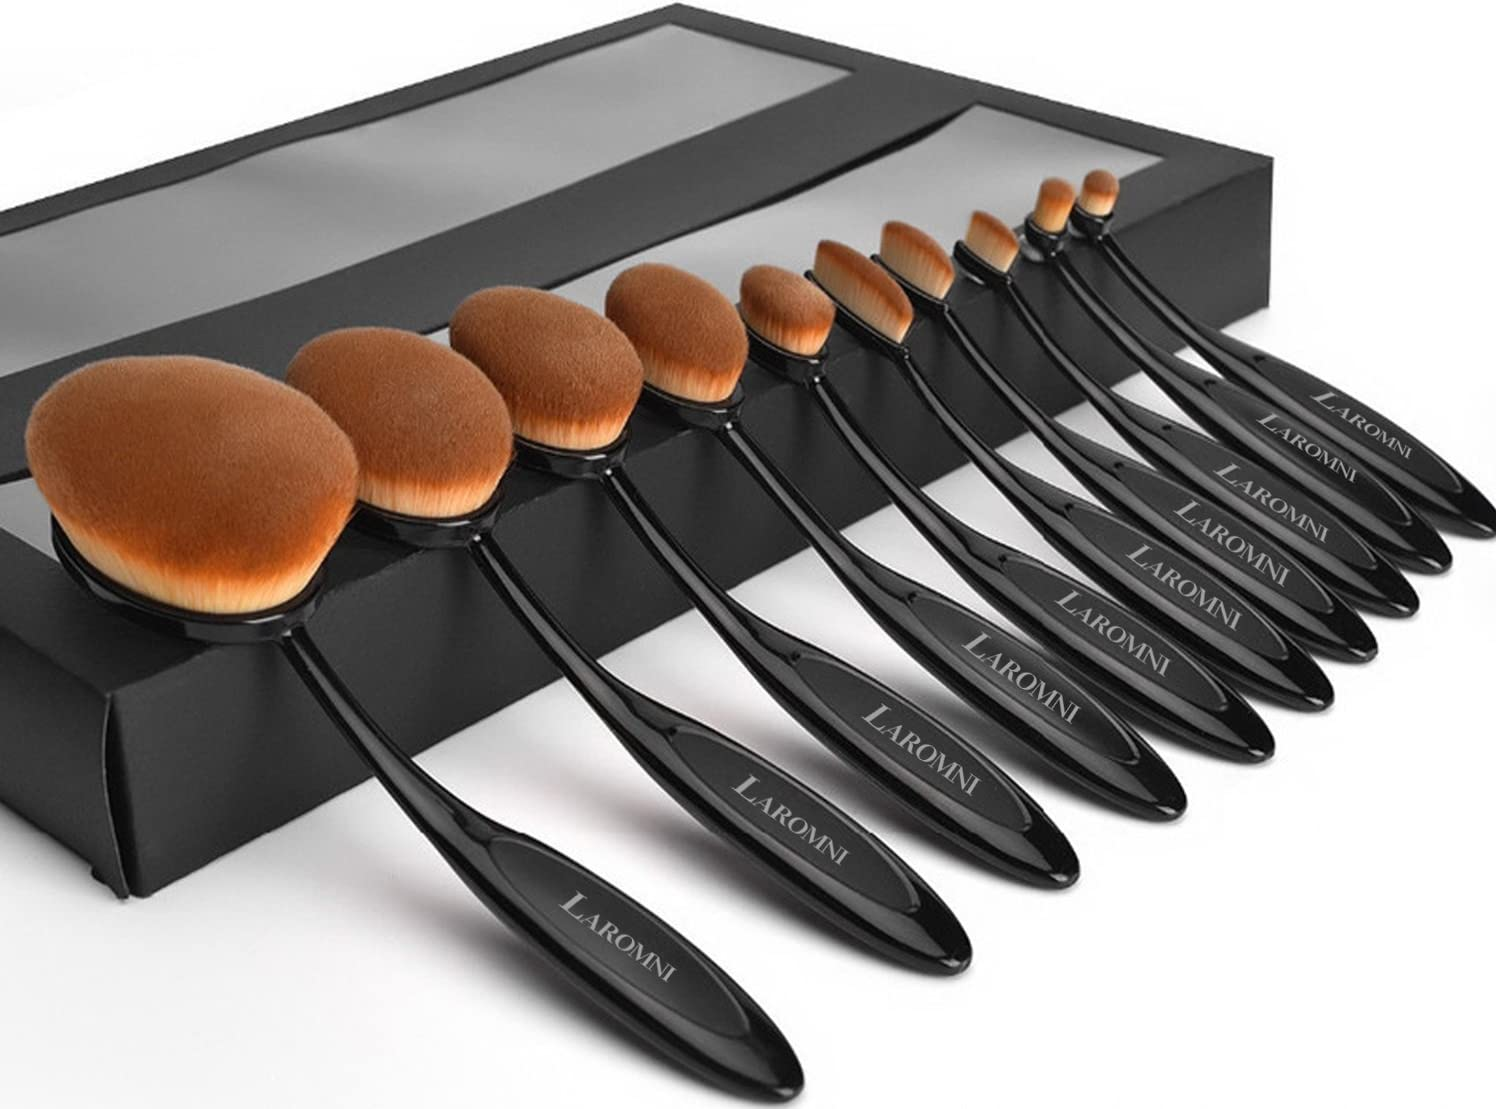 iMounTek Makeup Brushes Set 10Pcs Premium Oval Toothbrush Makeup Brushes with Refined Gift Box Flexible Brushes Soft Toothbrush Shaped for Foundation Concealer BB Cream Powder